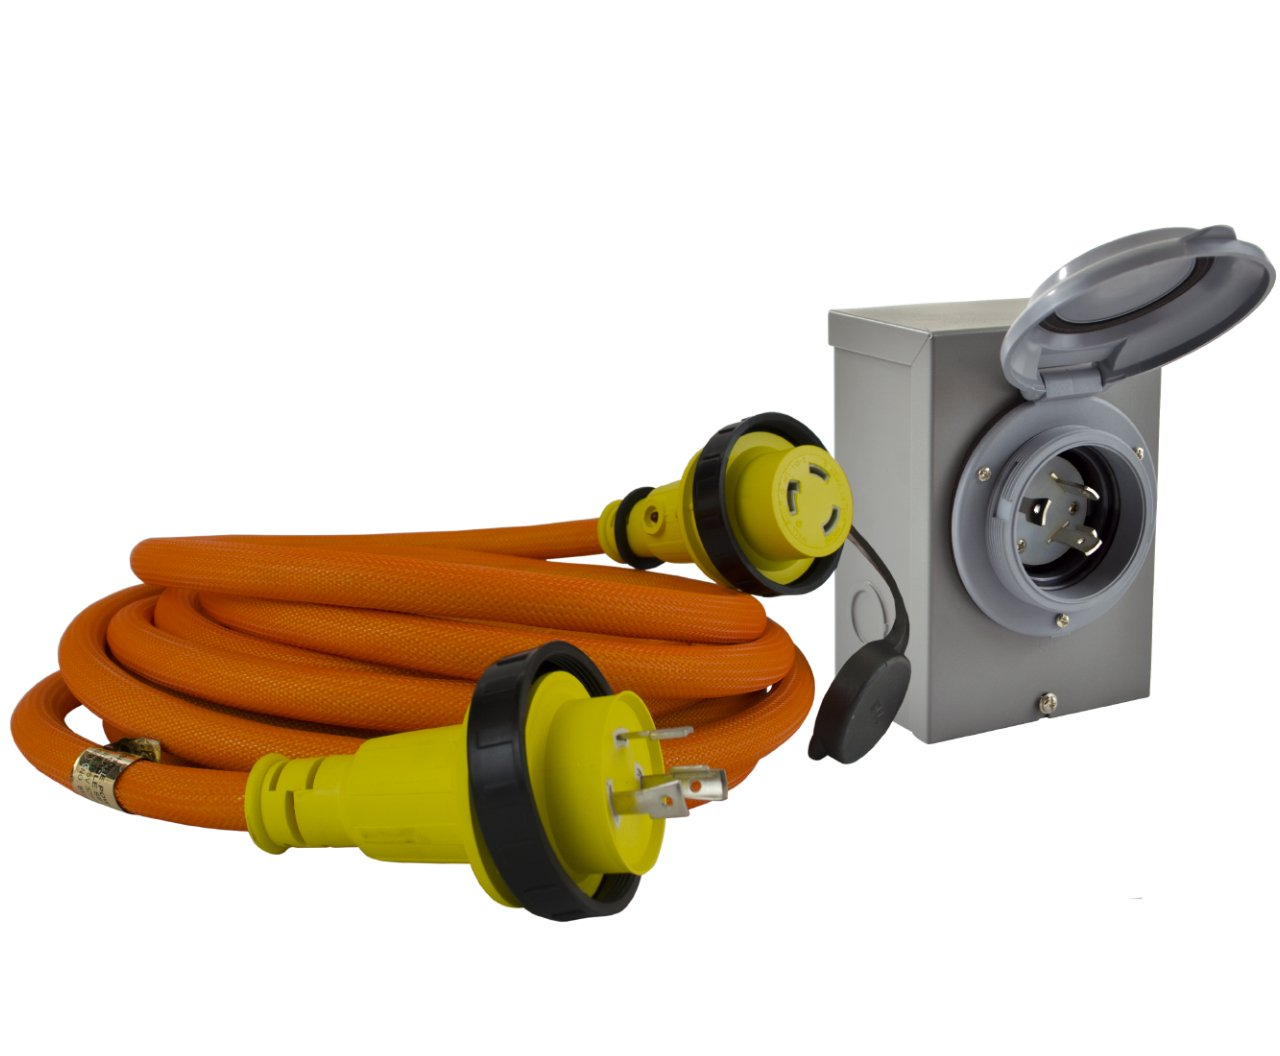 Conntek GIBL530-050 DUO-RainSeal Kit 30 Amp Transfer Switch Cord/Generator Extension Cord with Inlet Box, 50'